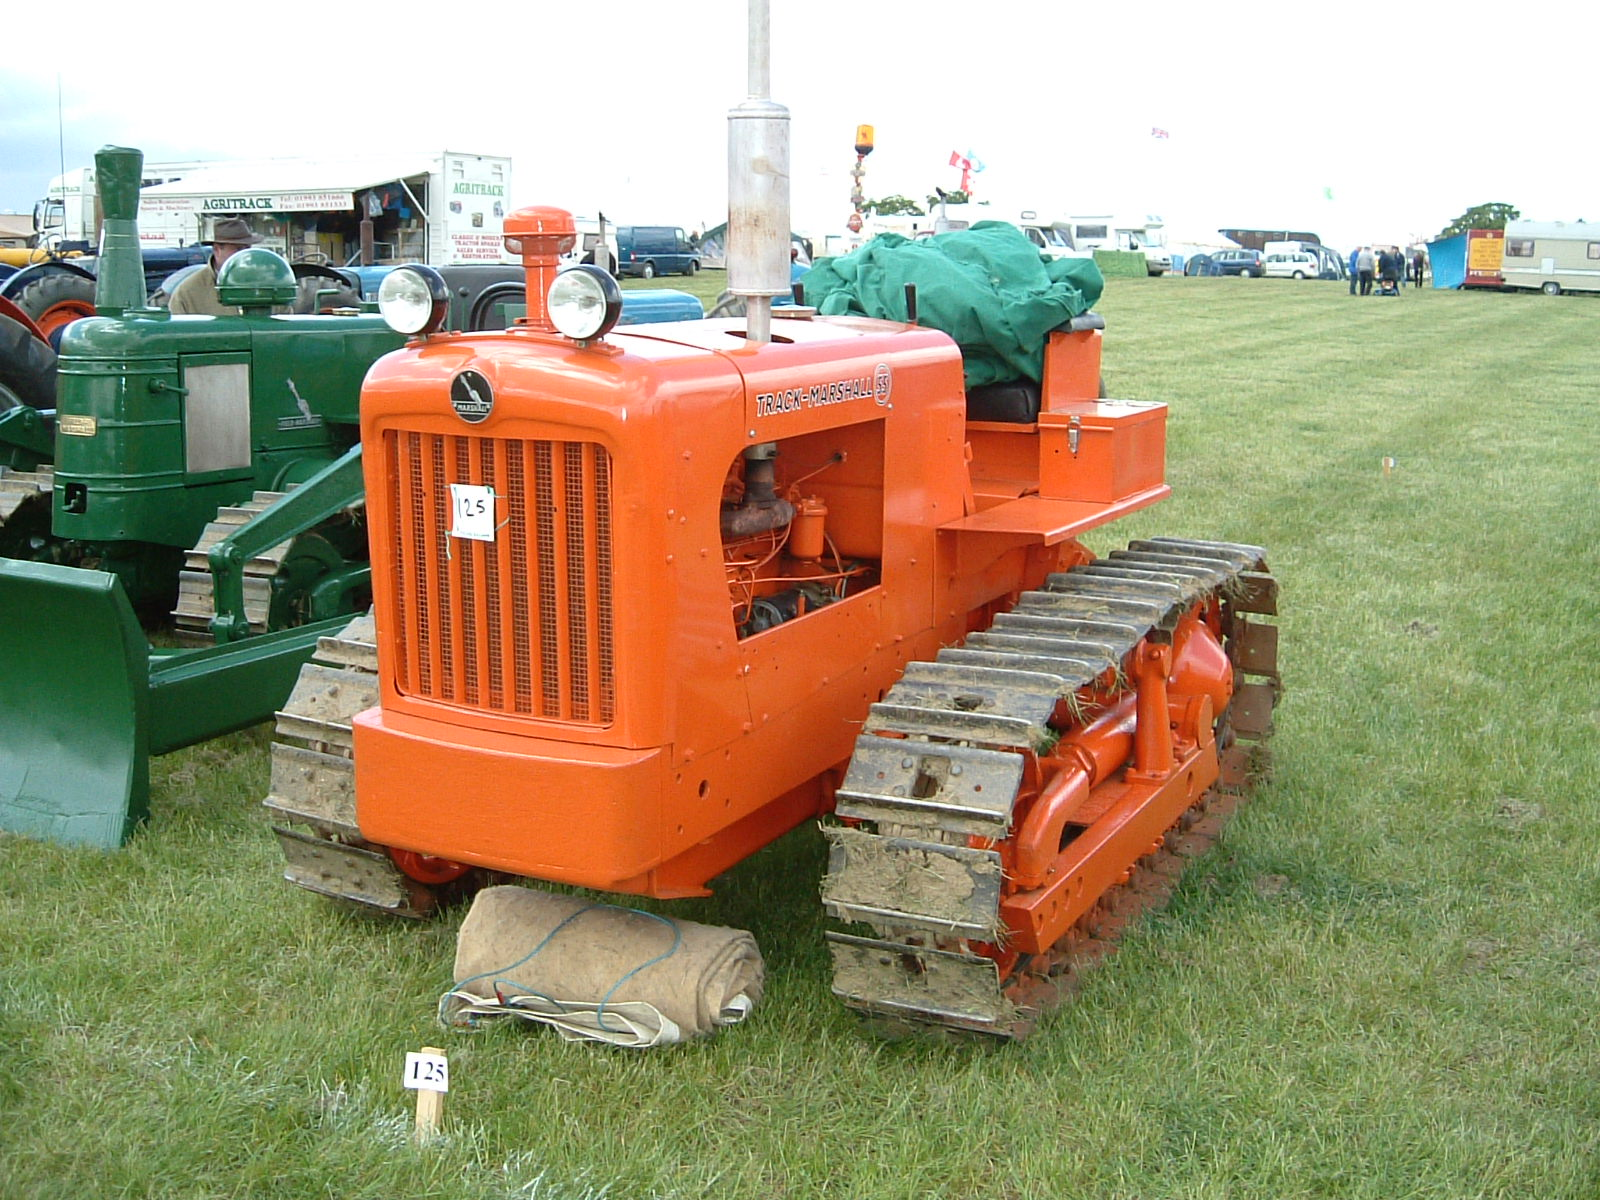 track marshall tractor construction plant wiki fandom powered rh tractors wikia com Jalin Marshall Track Marshall University Track and Field